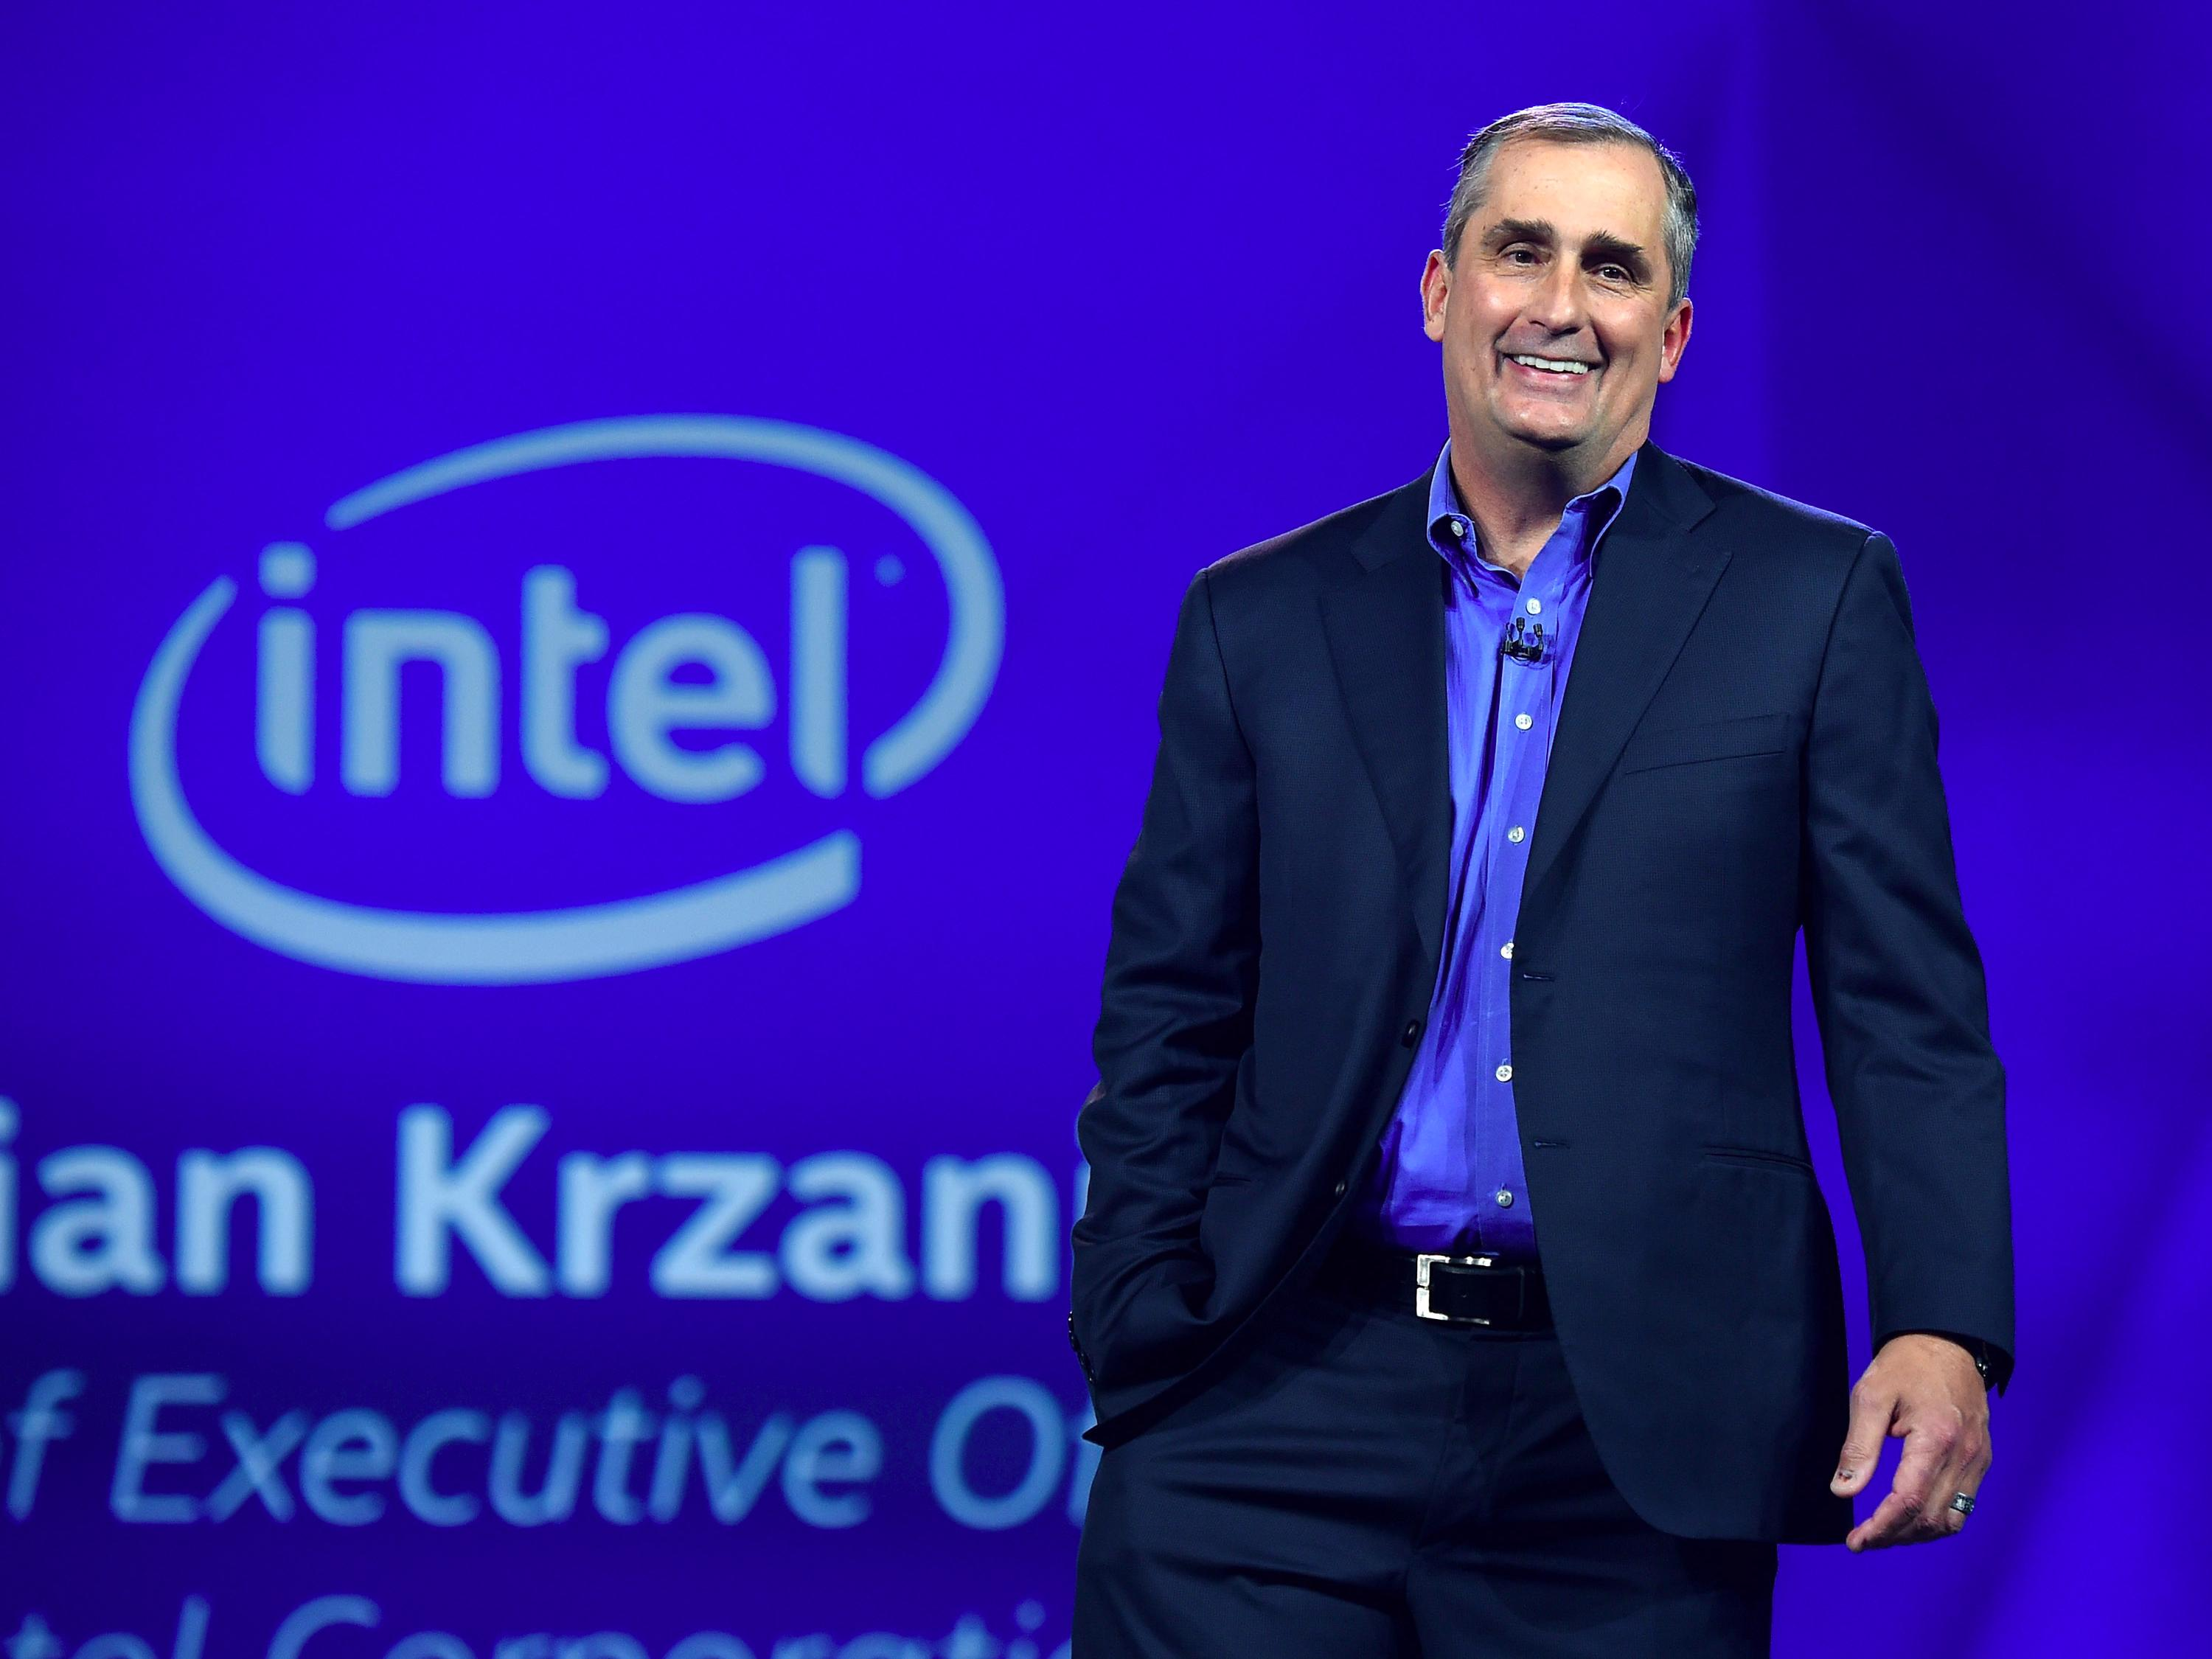 How a tiny part of Intel could help grow its most important business